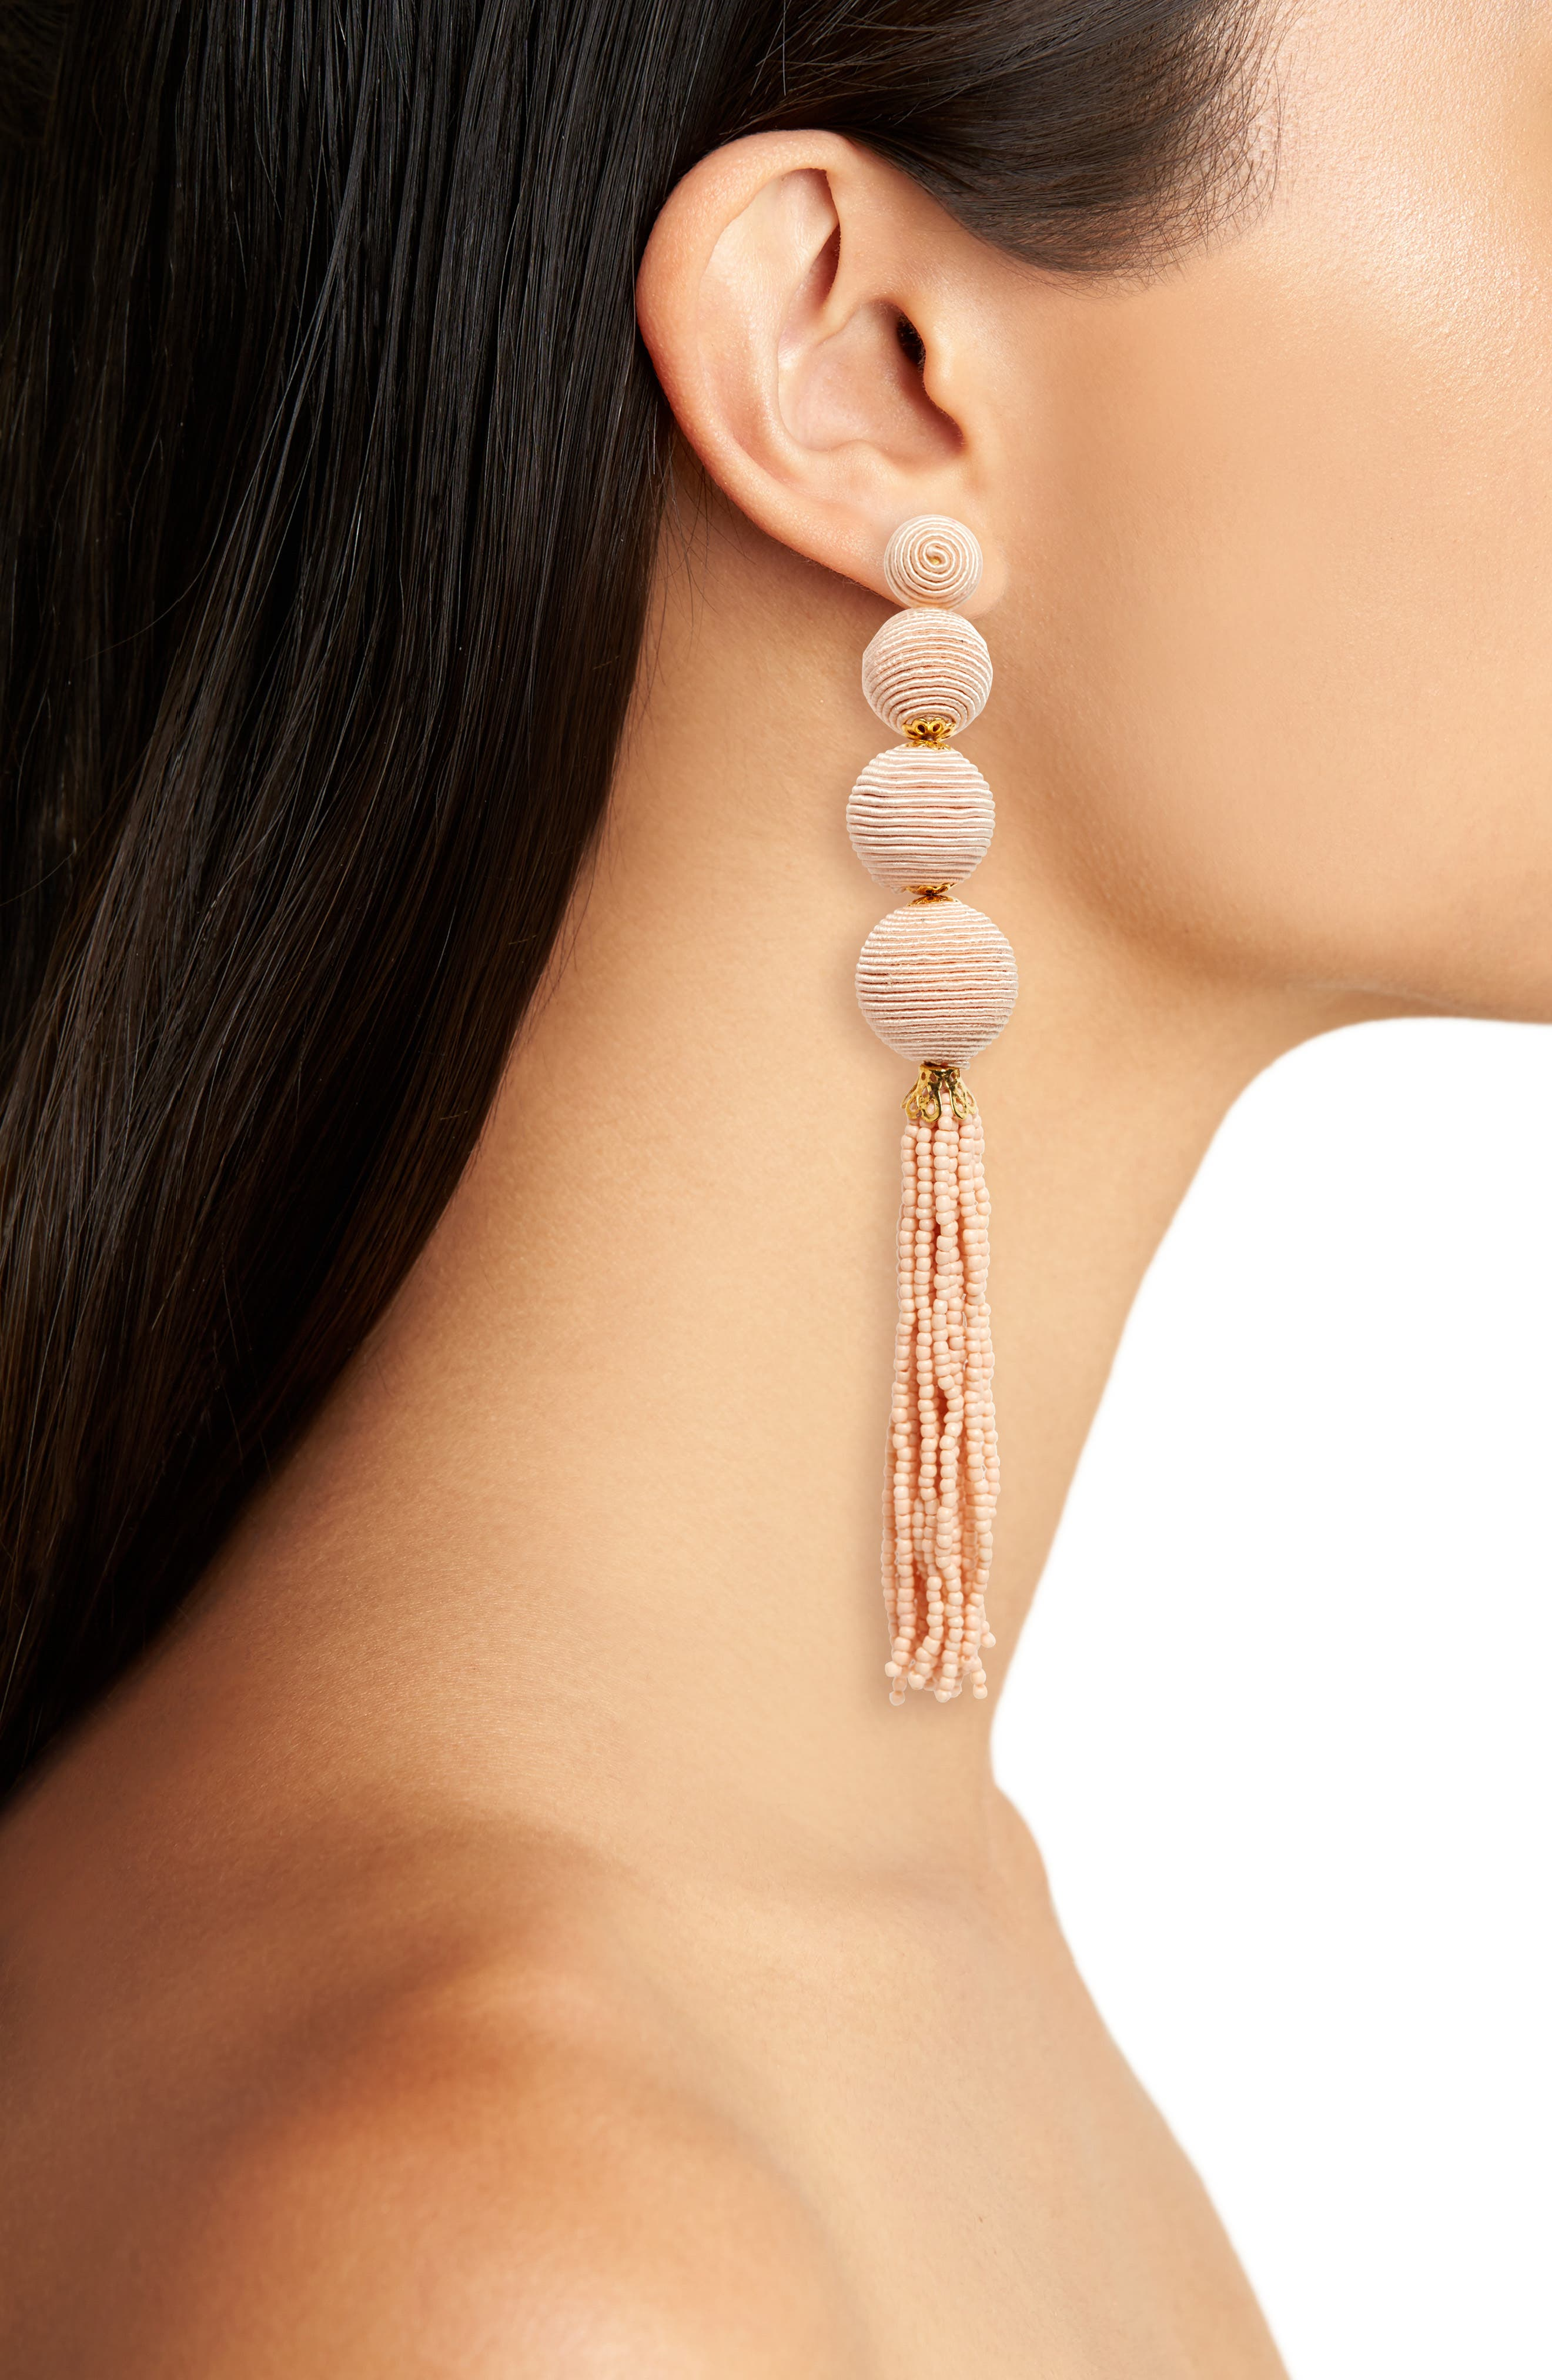 Wrapped Ball & Tassel Statement Earrings,                             Alternate thumbnail 2, color,                             Beige